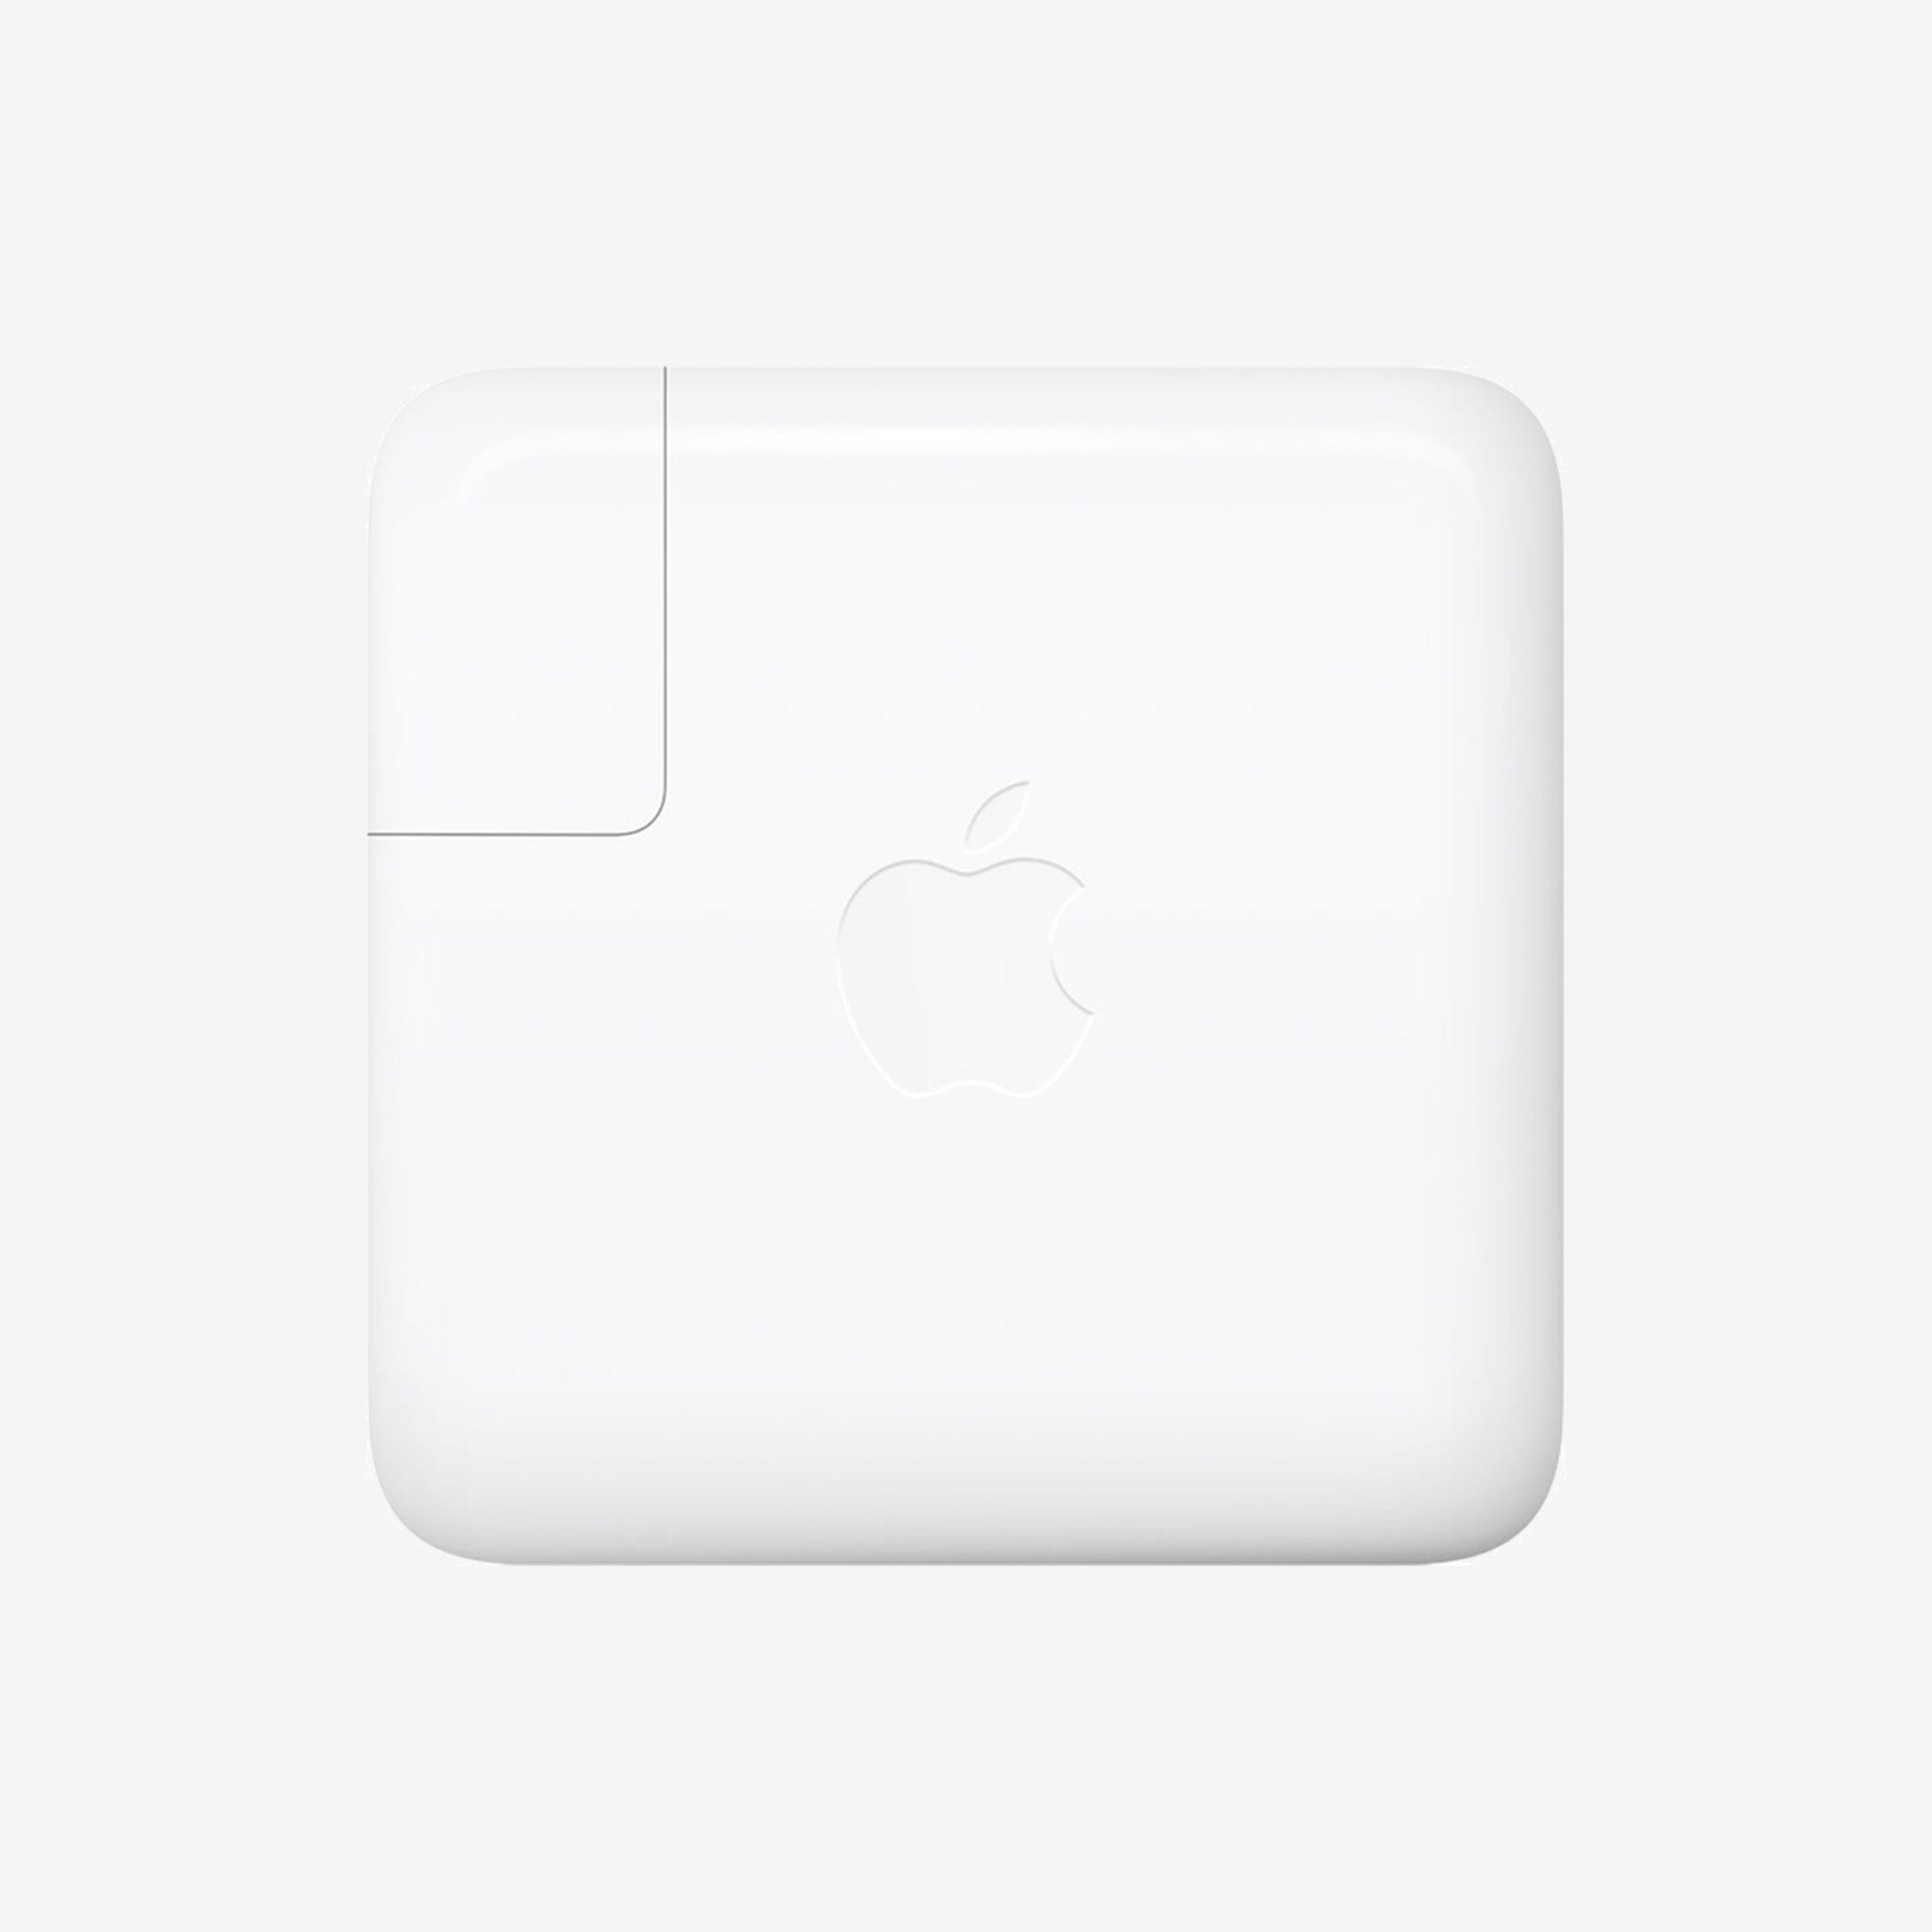 1 x USB-C Charger